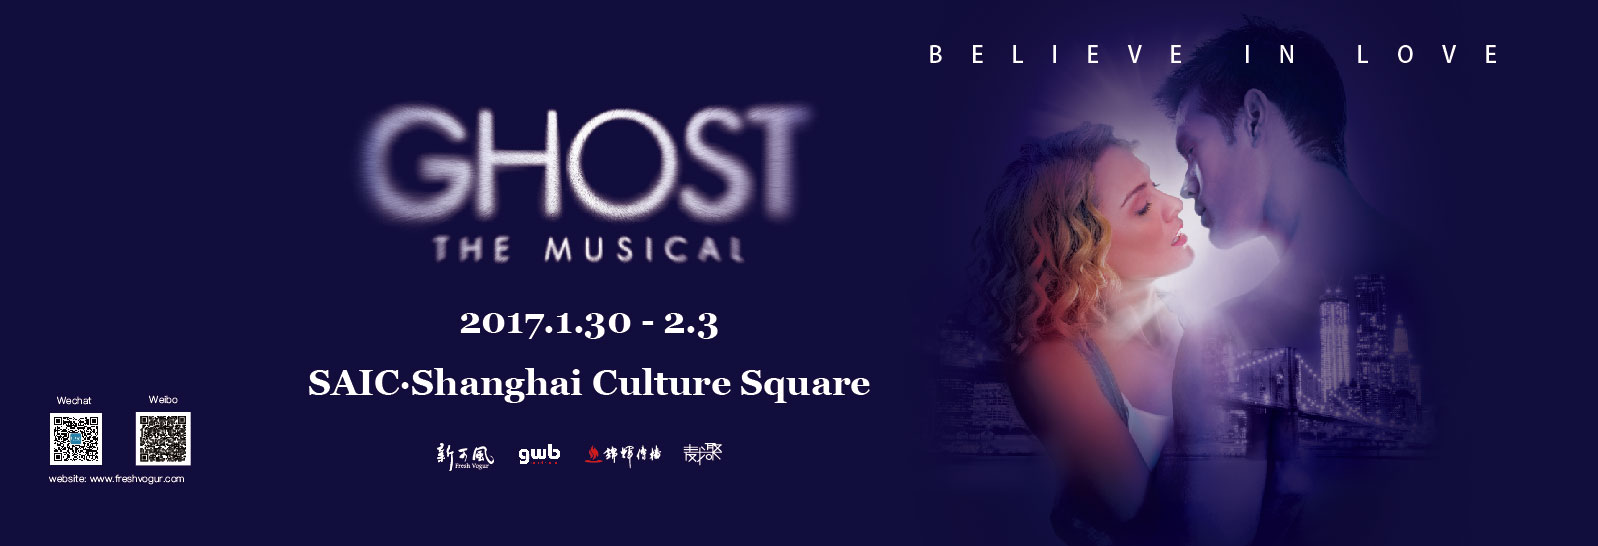 Ghost-The Musical